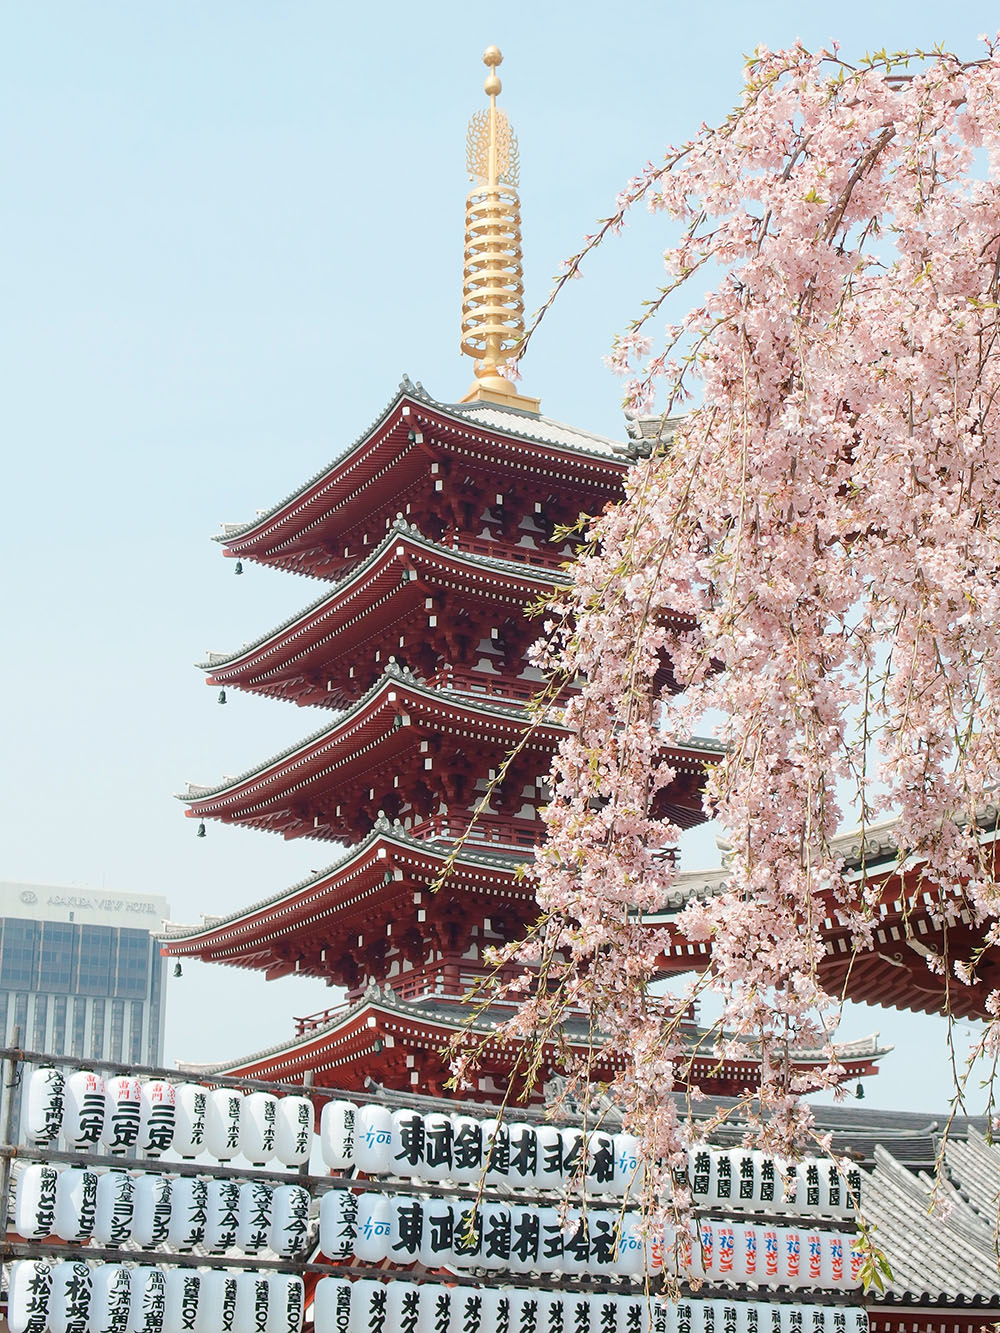 In season, cherry blossom can be found all over Japan, such as in Sensō-ji, Tokyo.